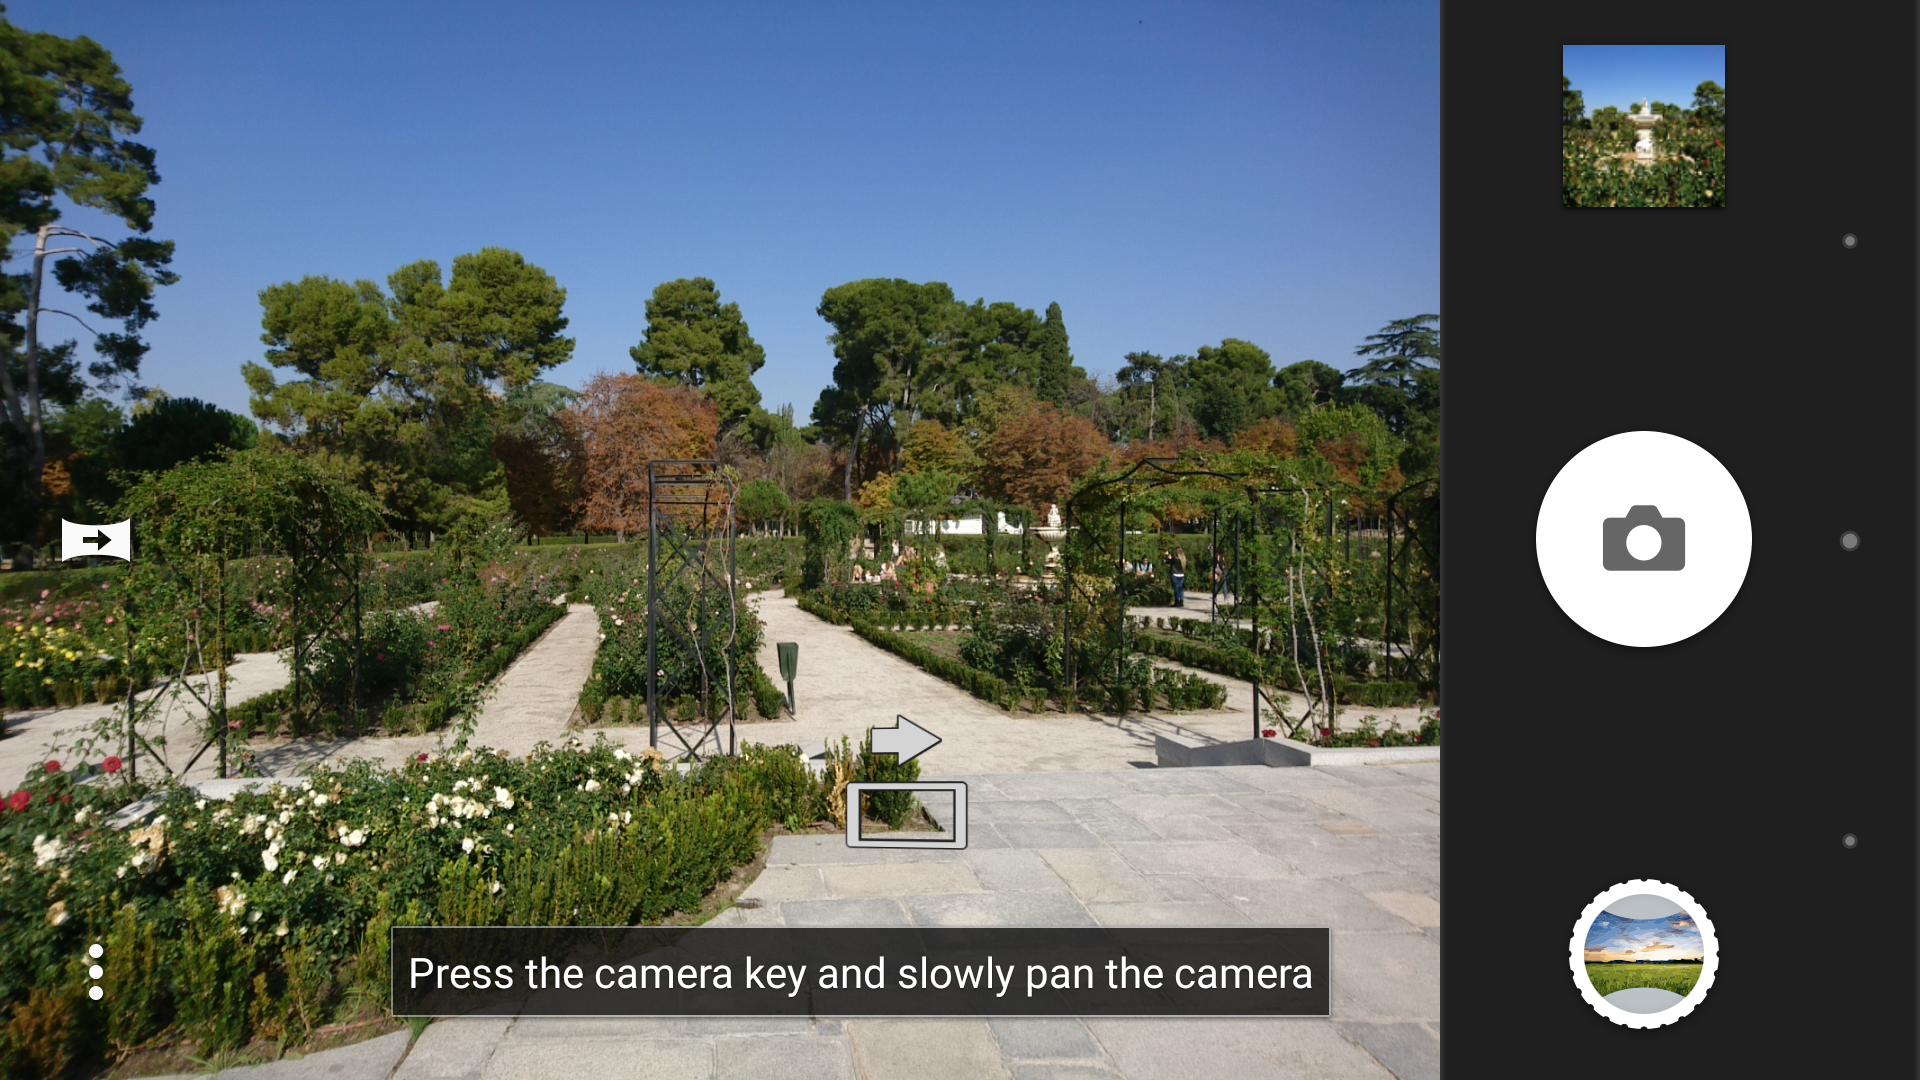 Sony Xperia XZ camera review: Digital Photography Review